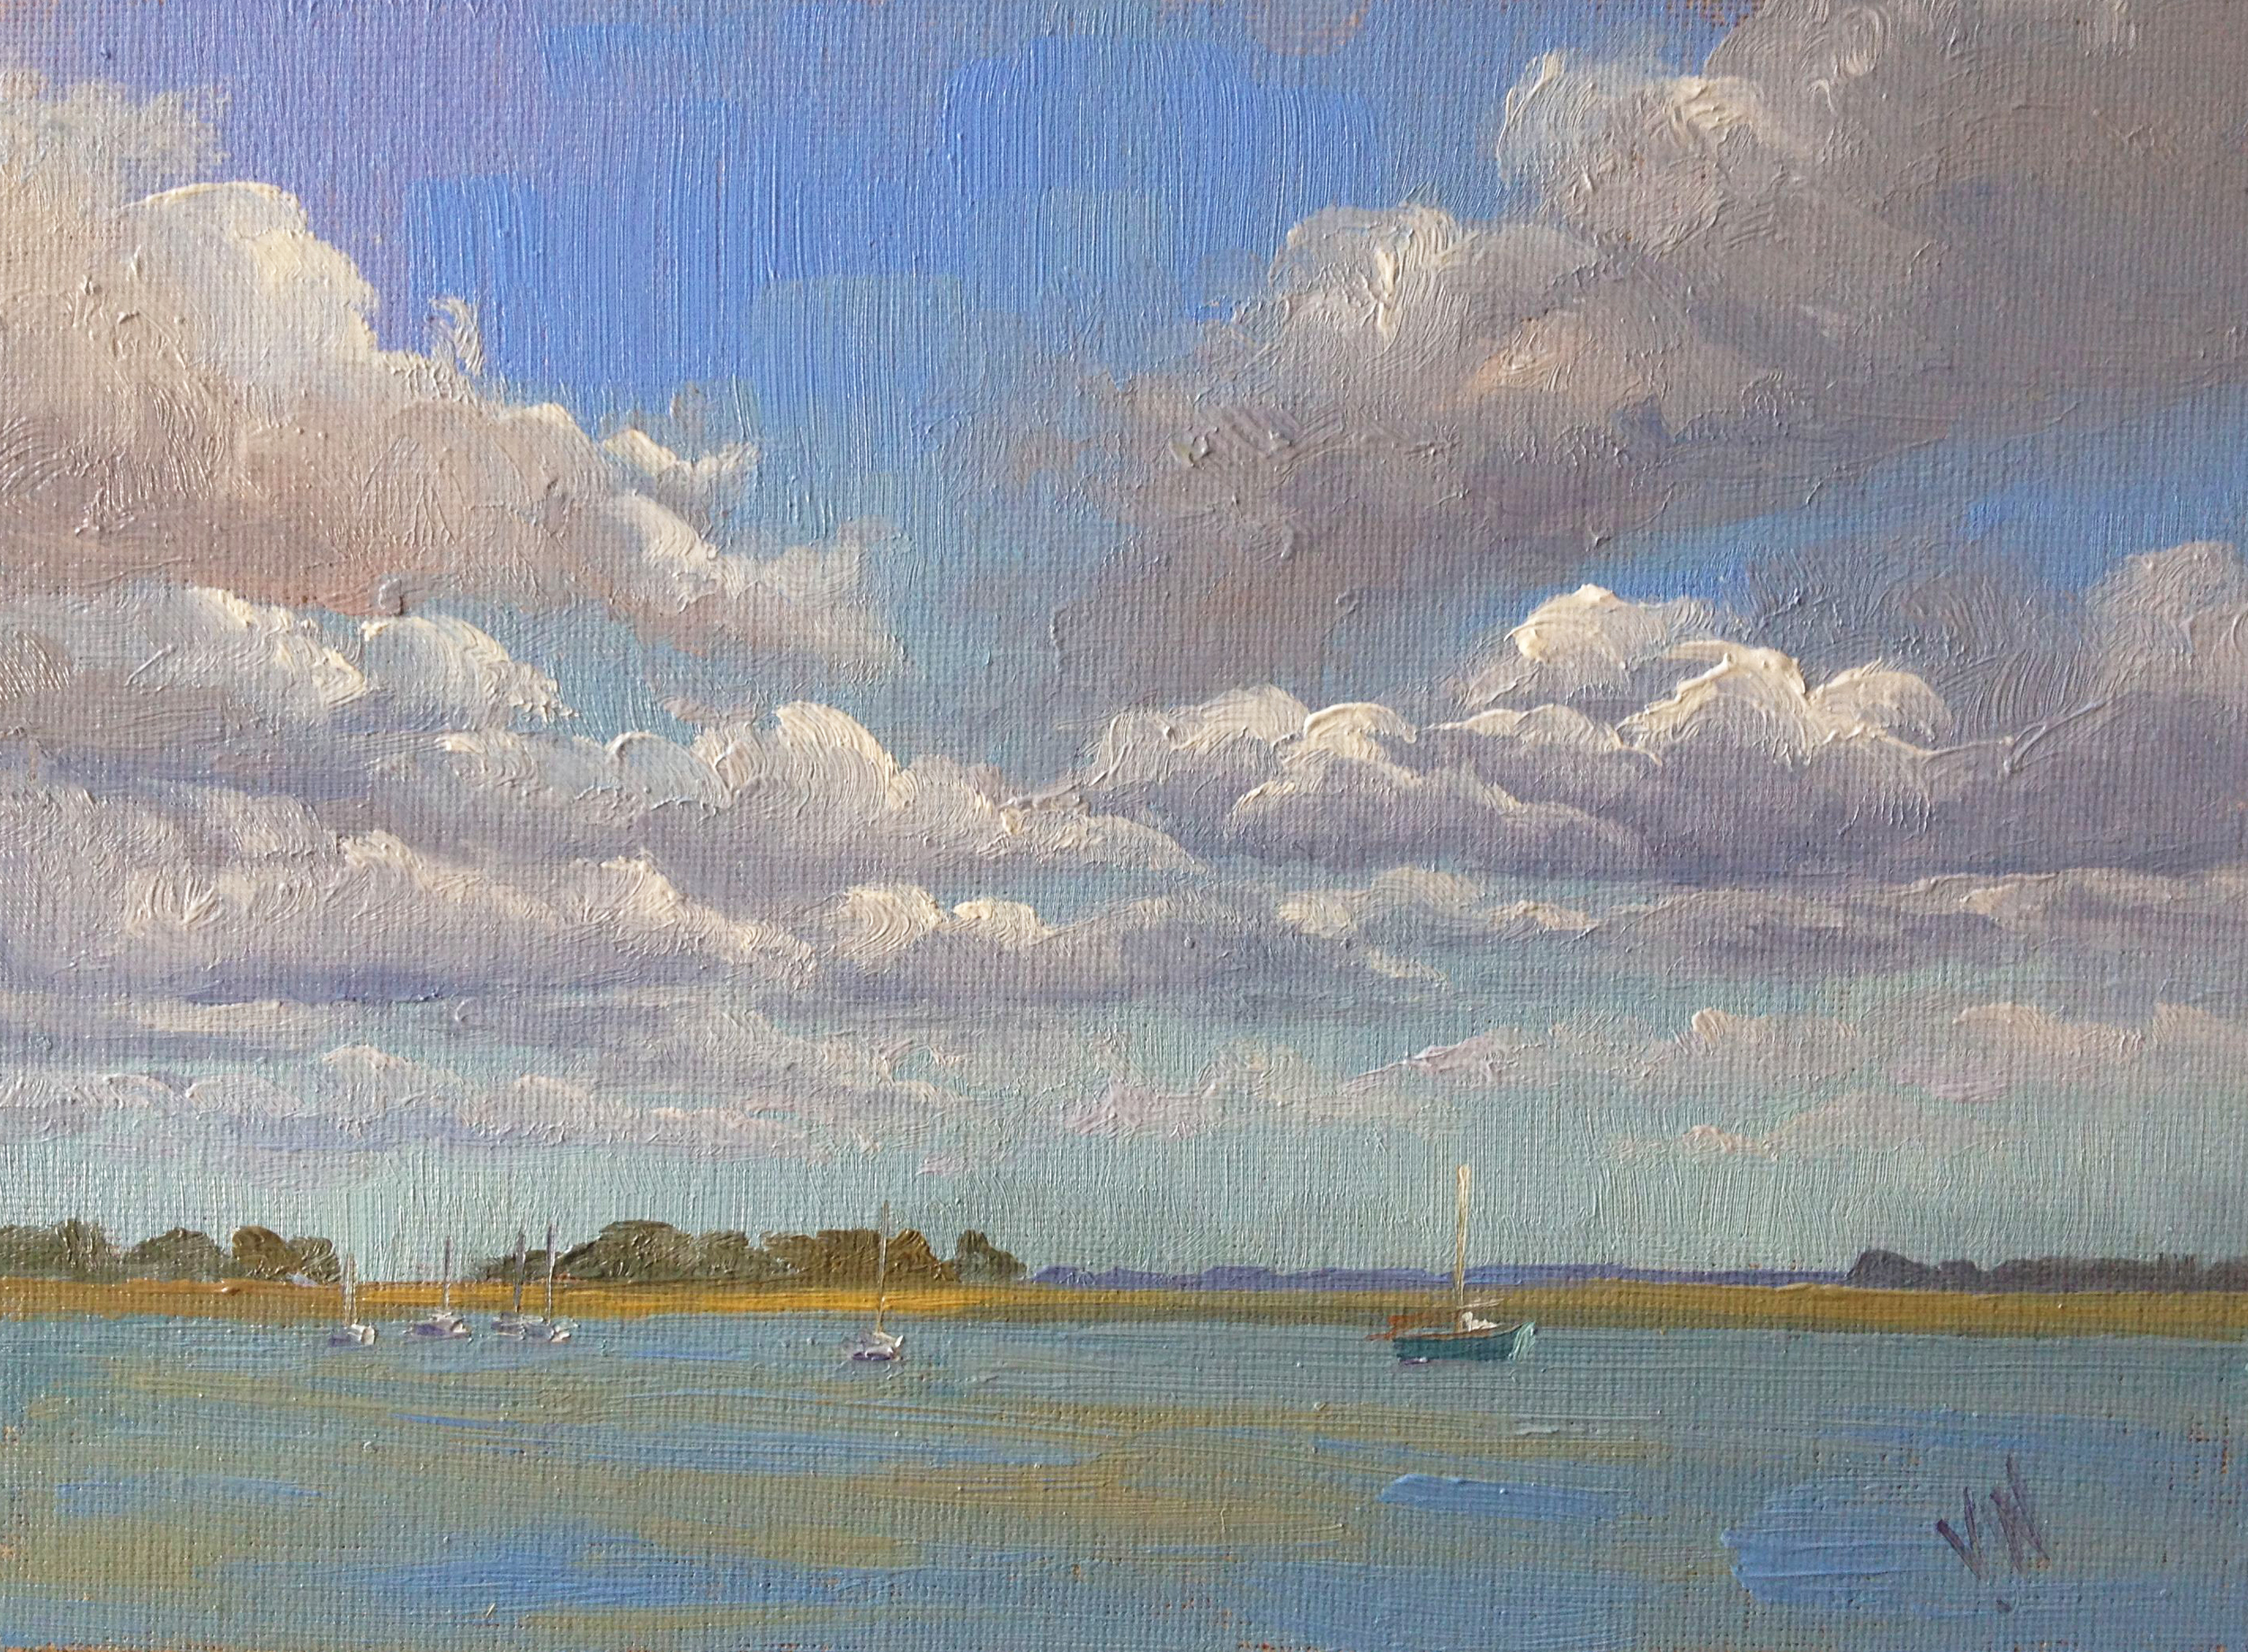 Heybridge Clouds 18x24cm Oil on canvas board